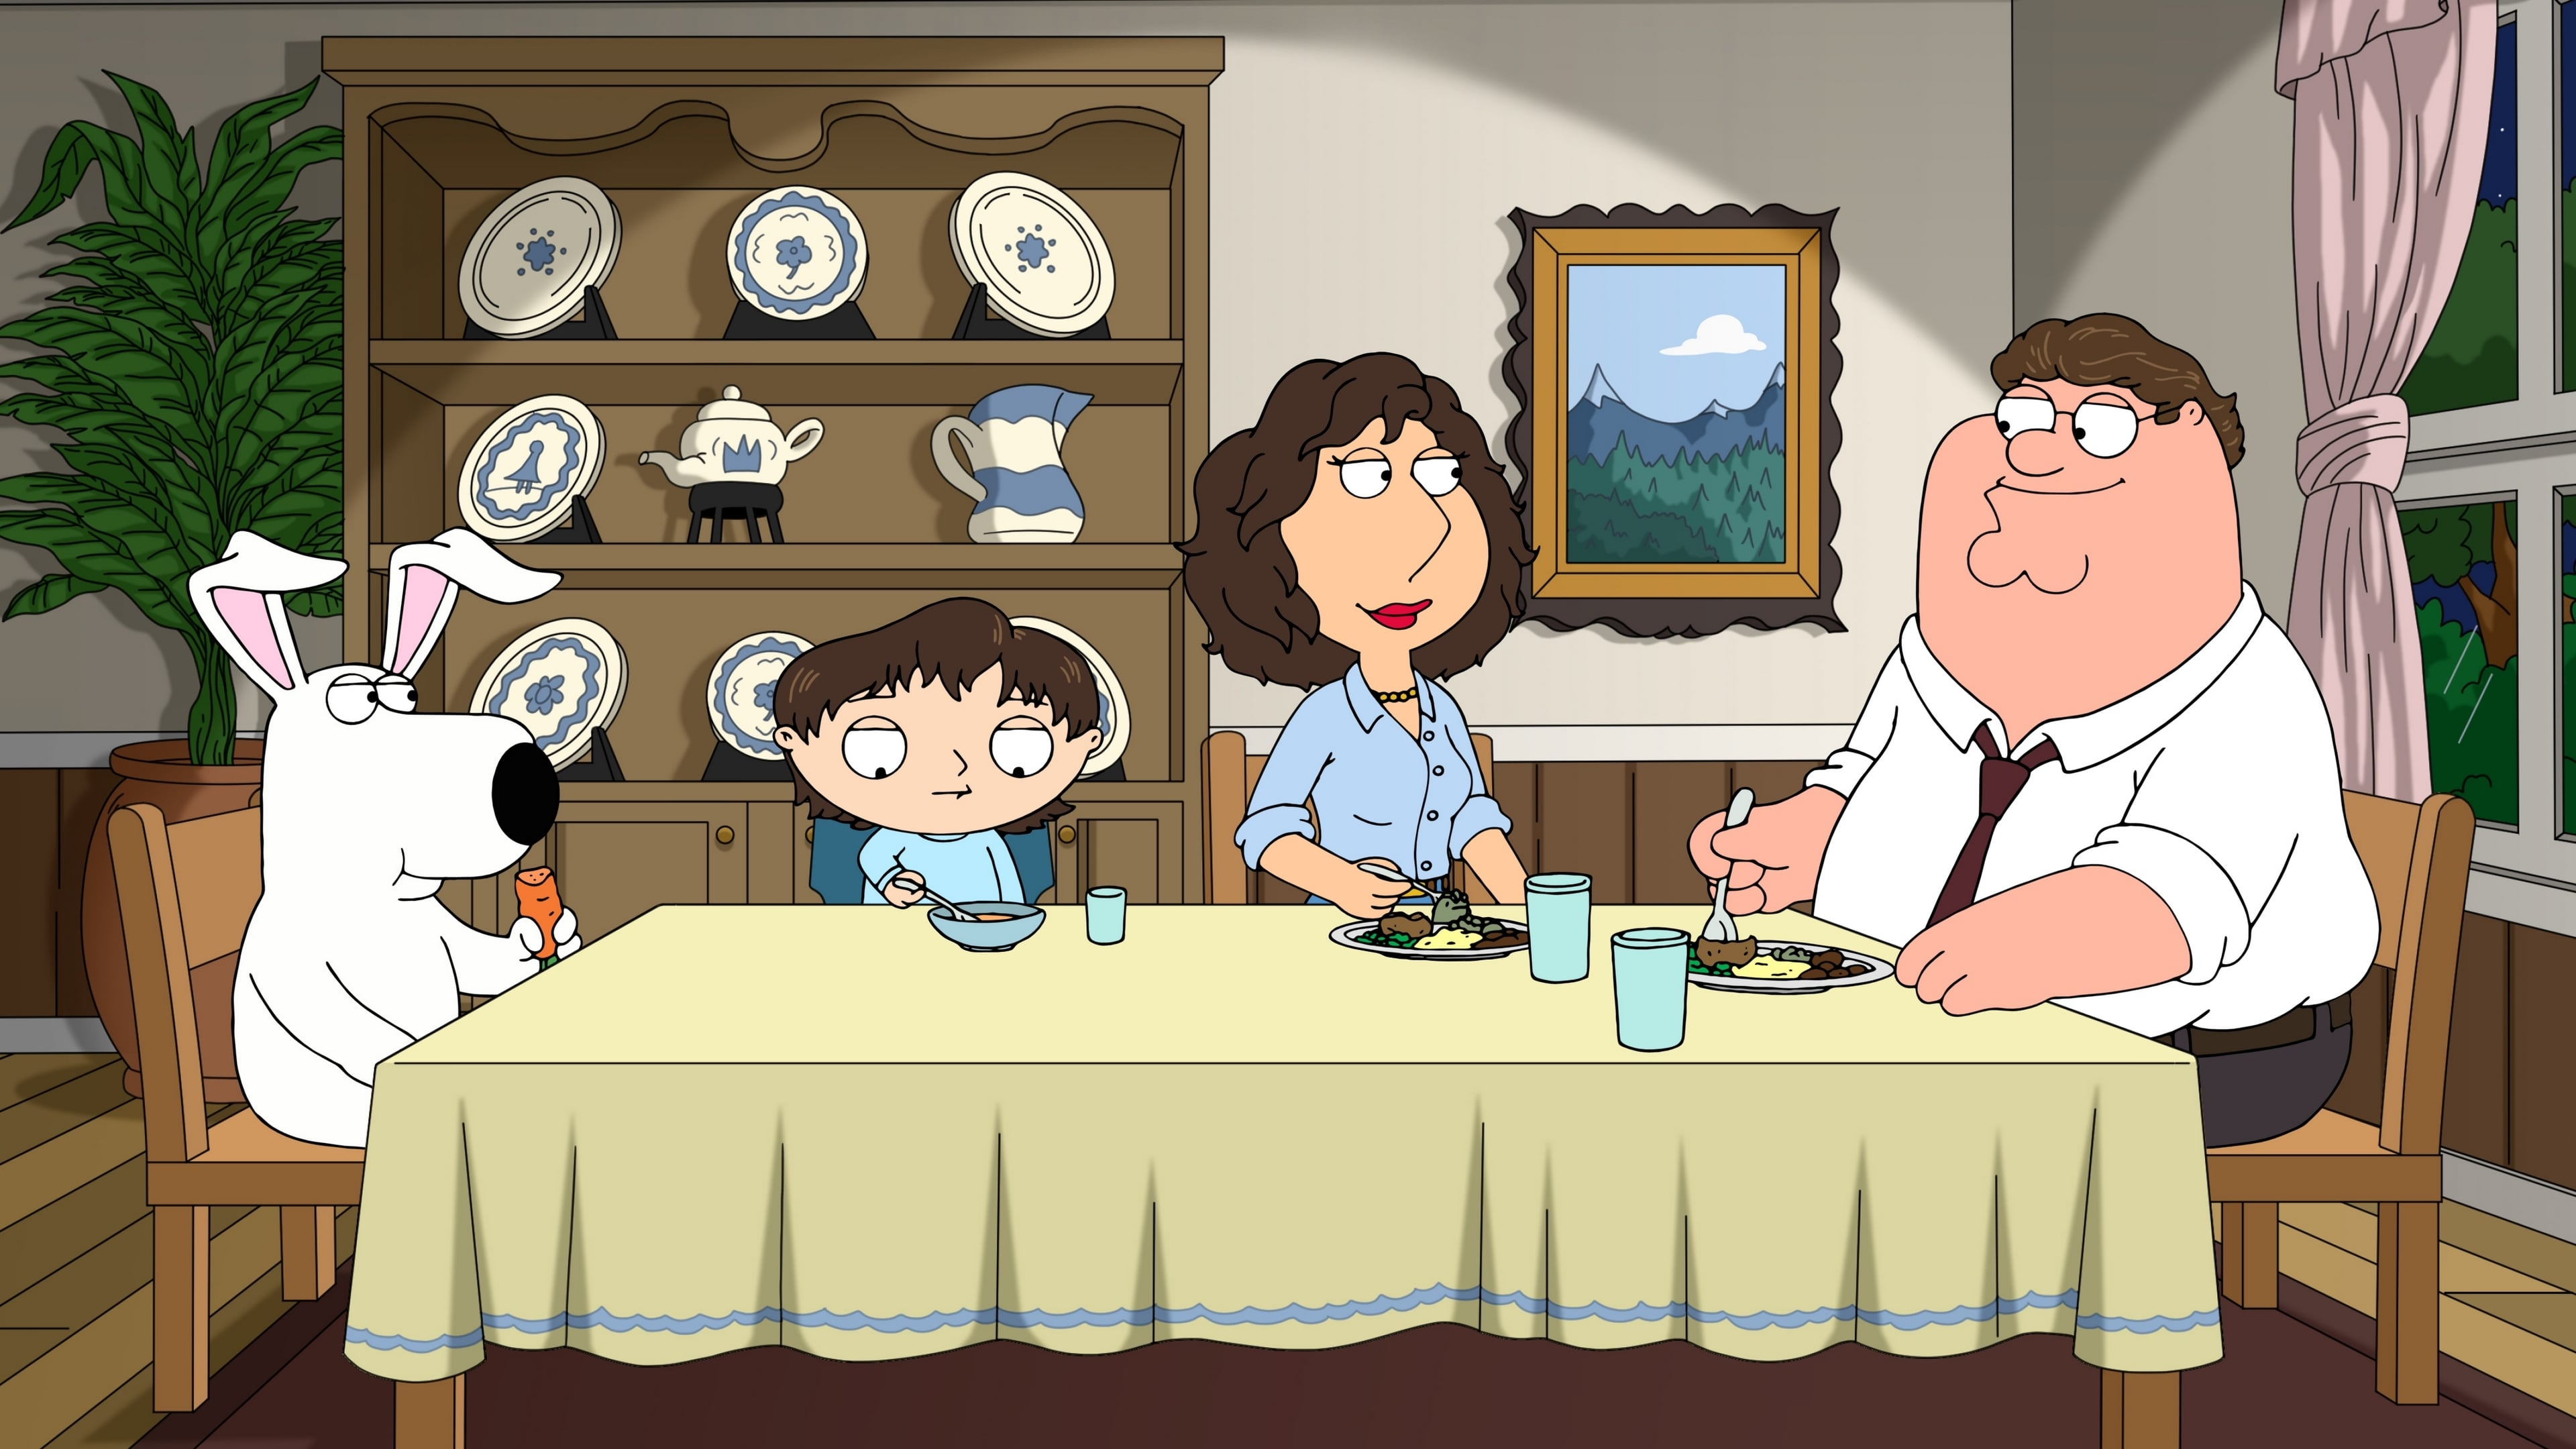 Adult family guy episodes